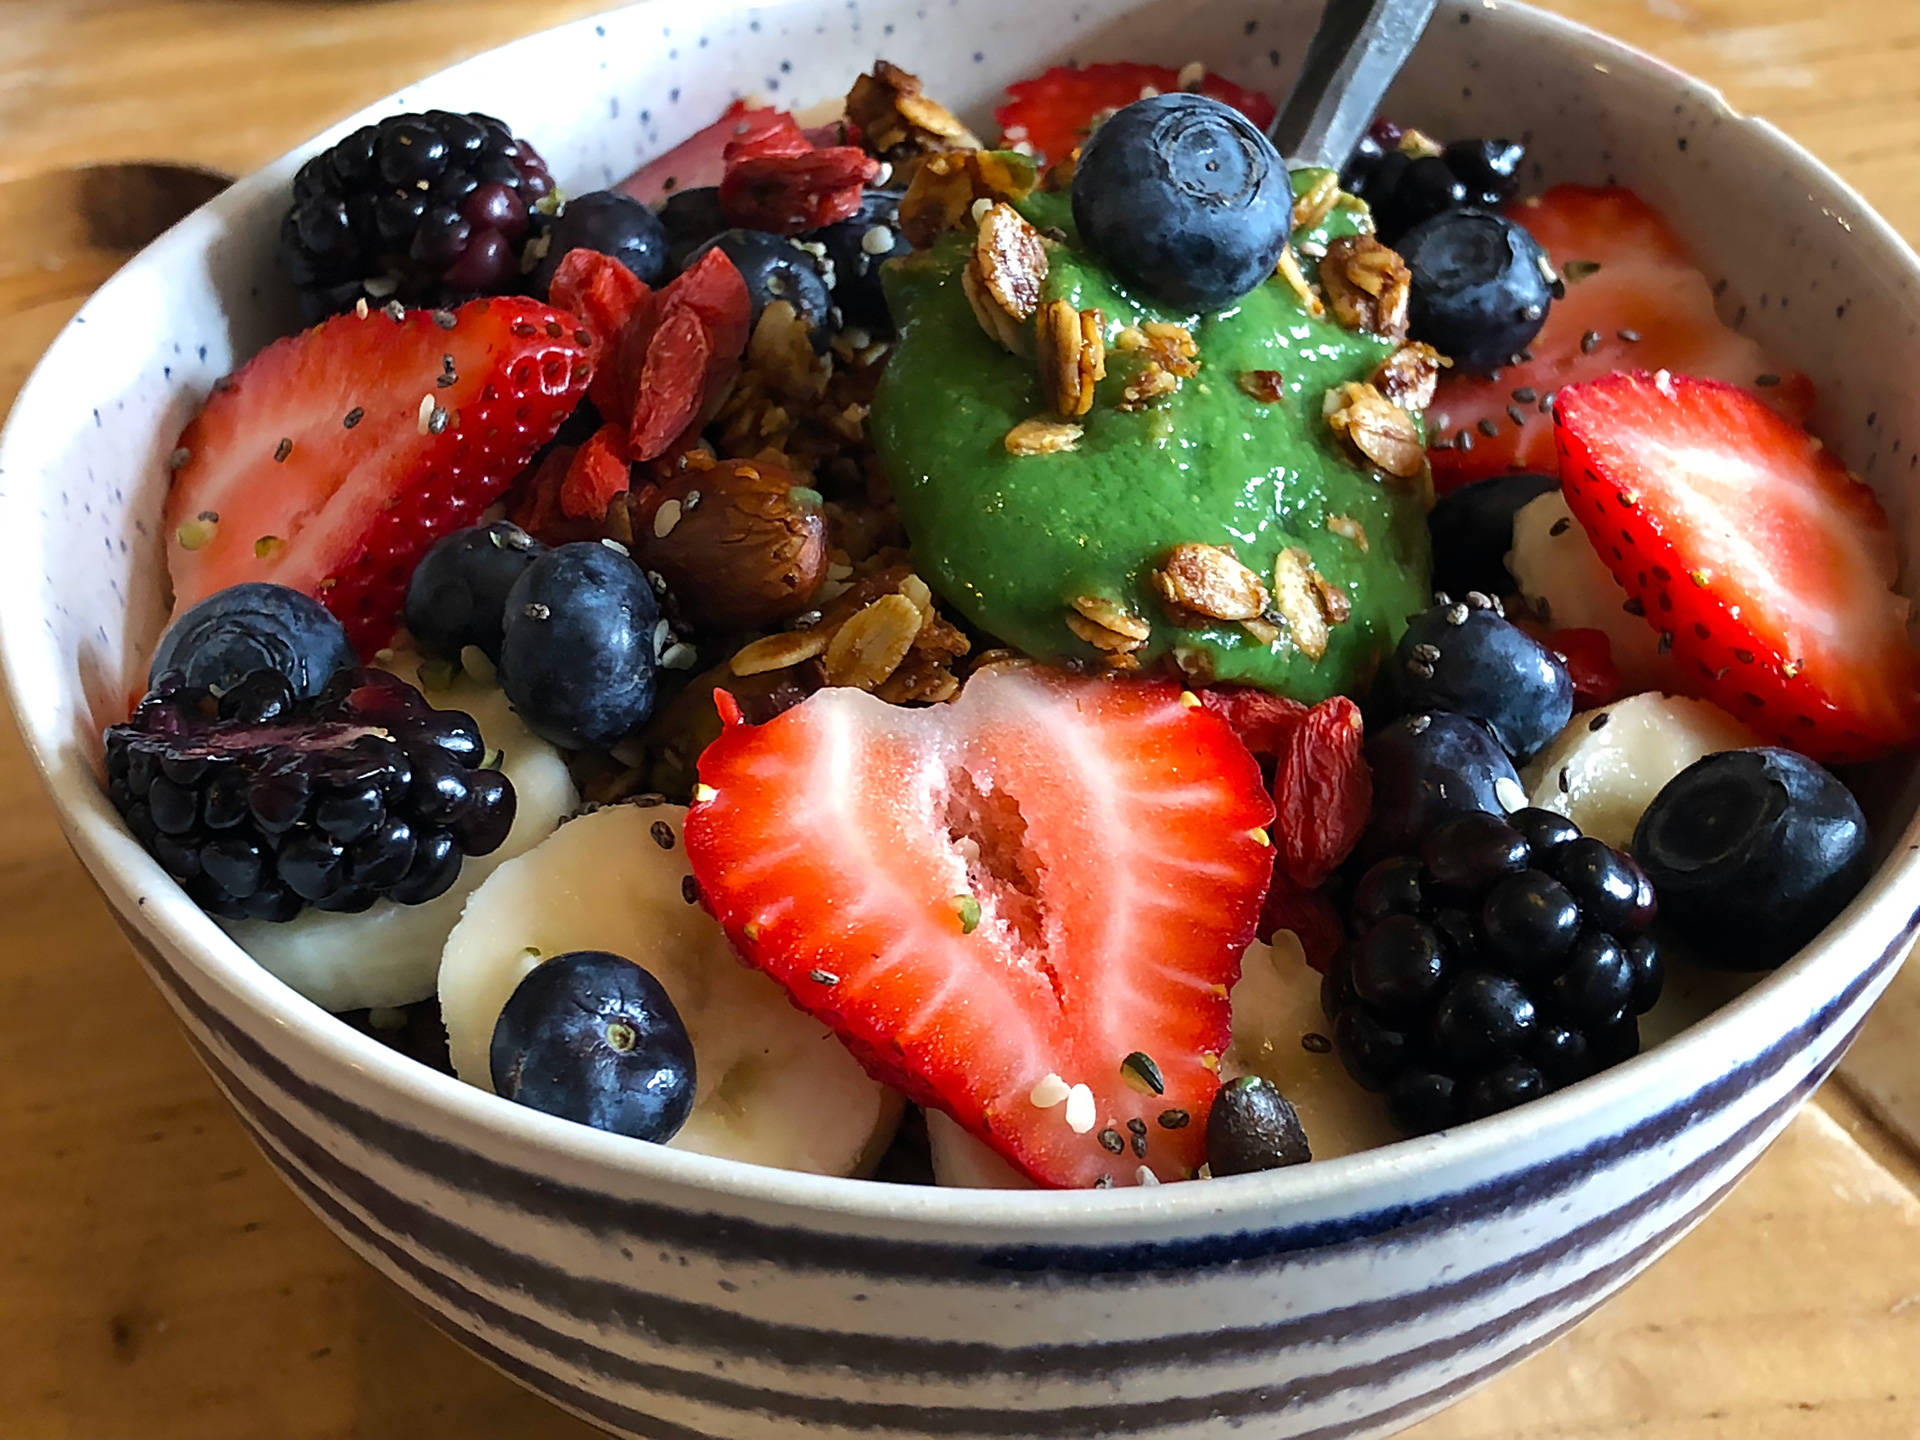 Beloved Café's Green Goddess Bowl ($13): avocado, spinach, dates, ginger, lime, coconut water, topped with homemade granola, banana, fresh berries, goji berries, hemp seeds, chia seeds and maca. This bowl was great for getting energized at the start of a day. A perfect combo of sweet and savory. Wendy Goodfriend